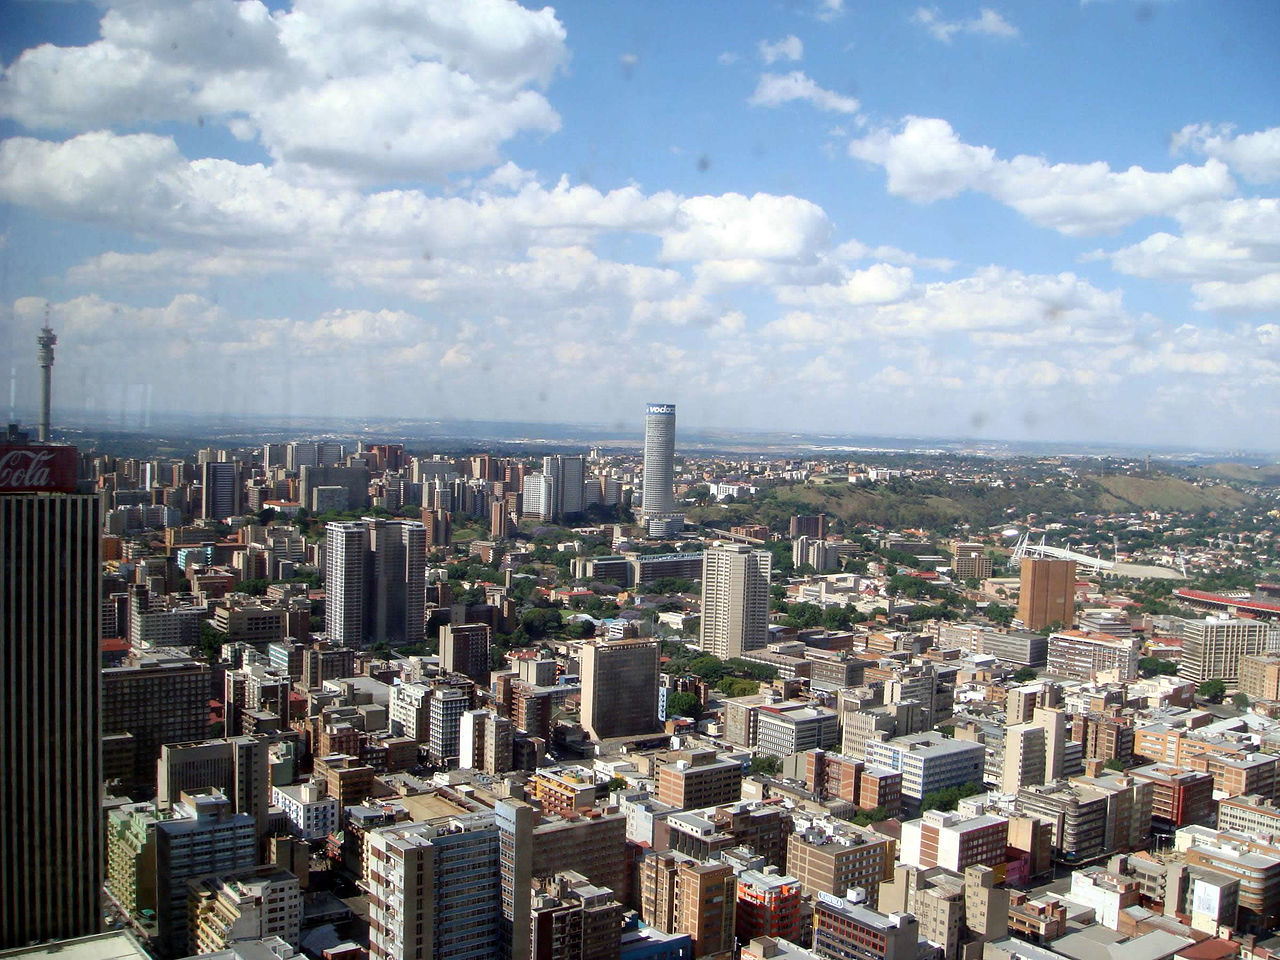 File:View From The Top Of Africa Building